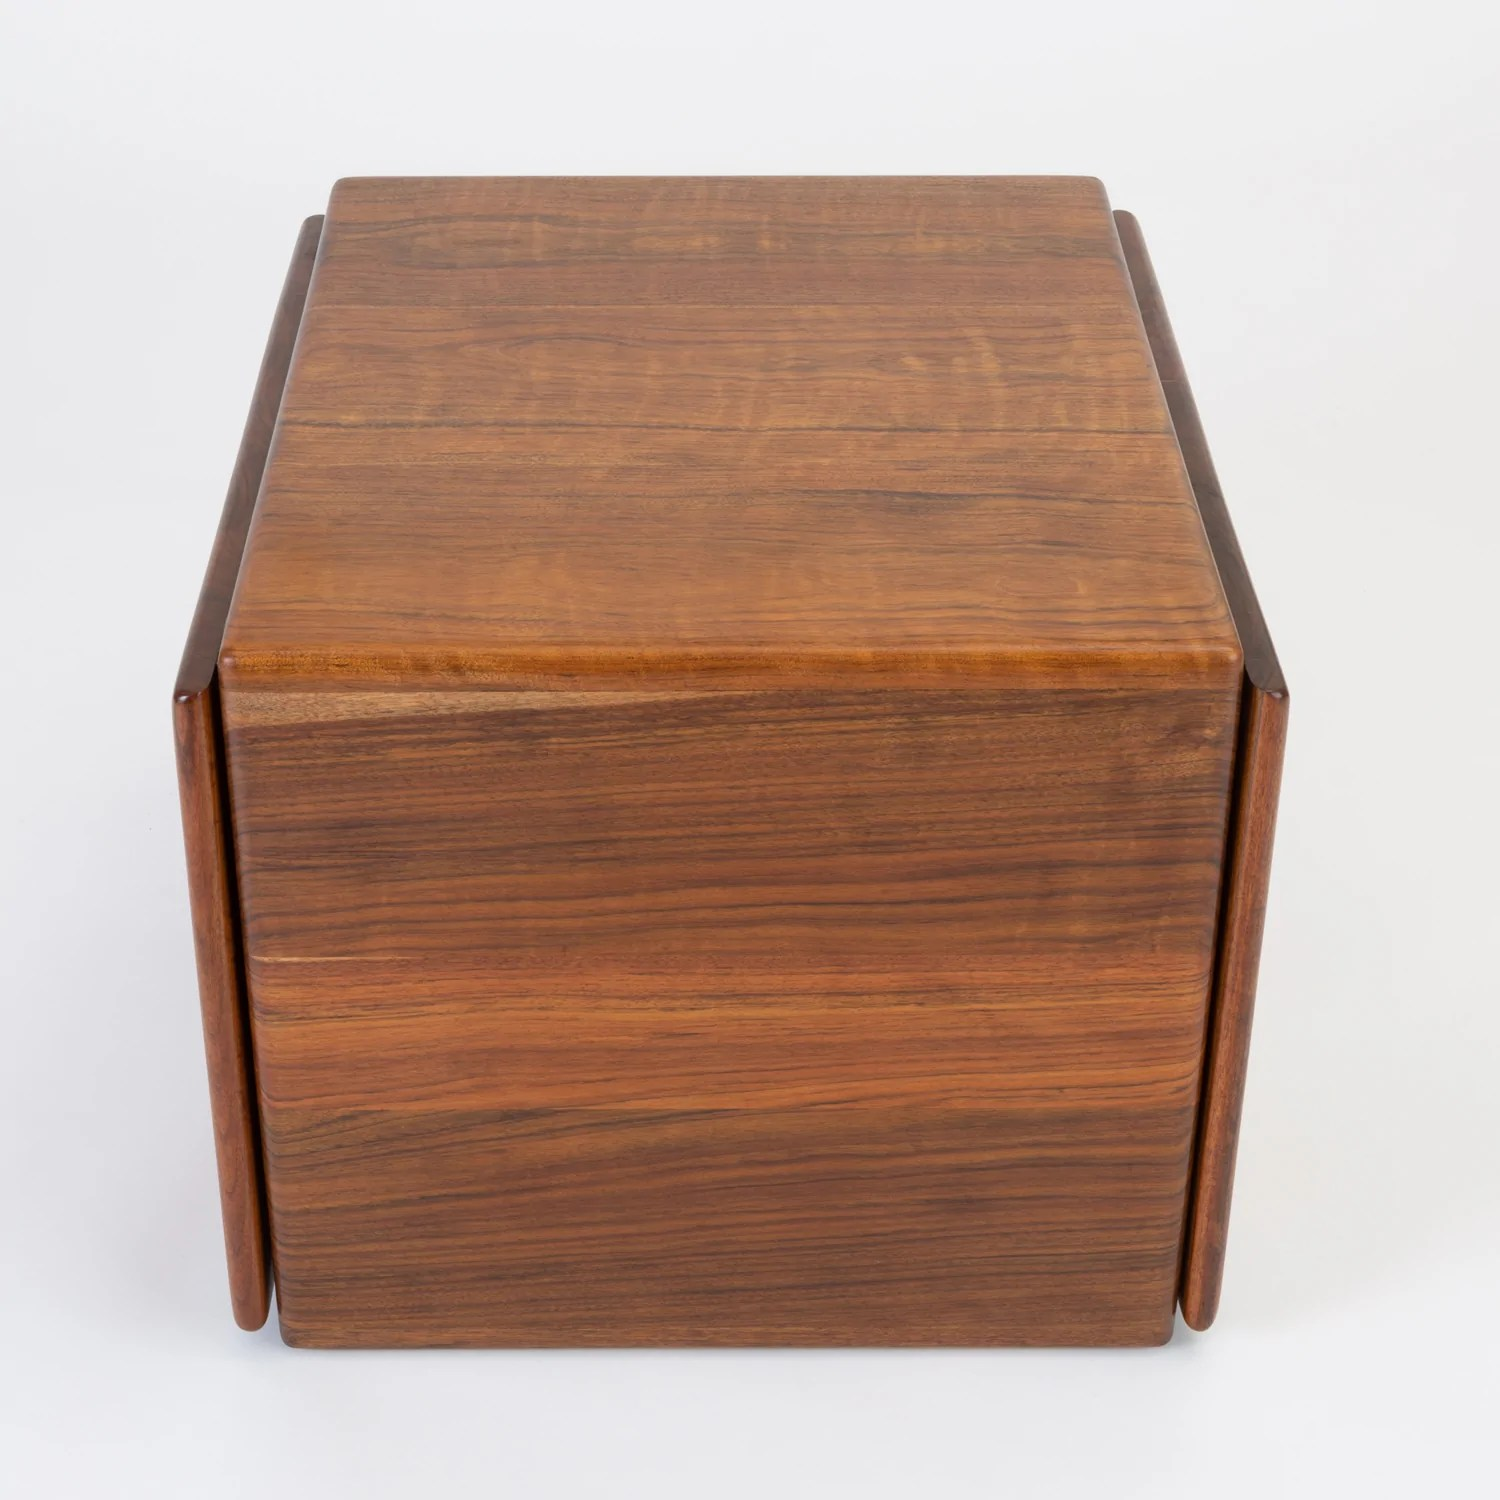 Wood Blanket Box Blanket Chest Or Cube Table In African Shedua By Gerald Mccabe